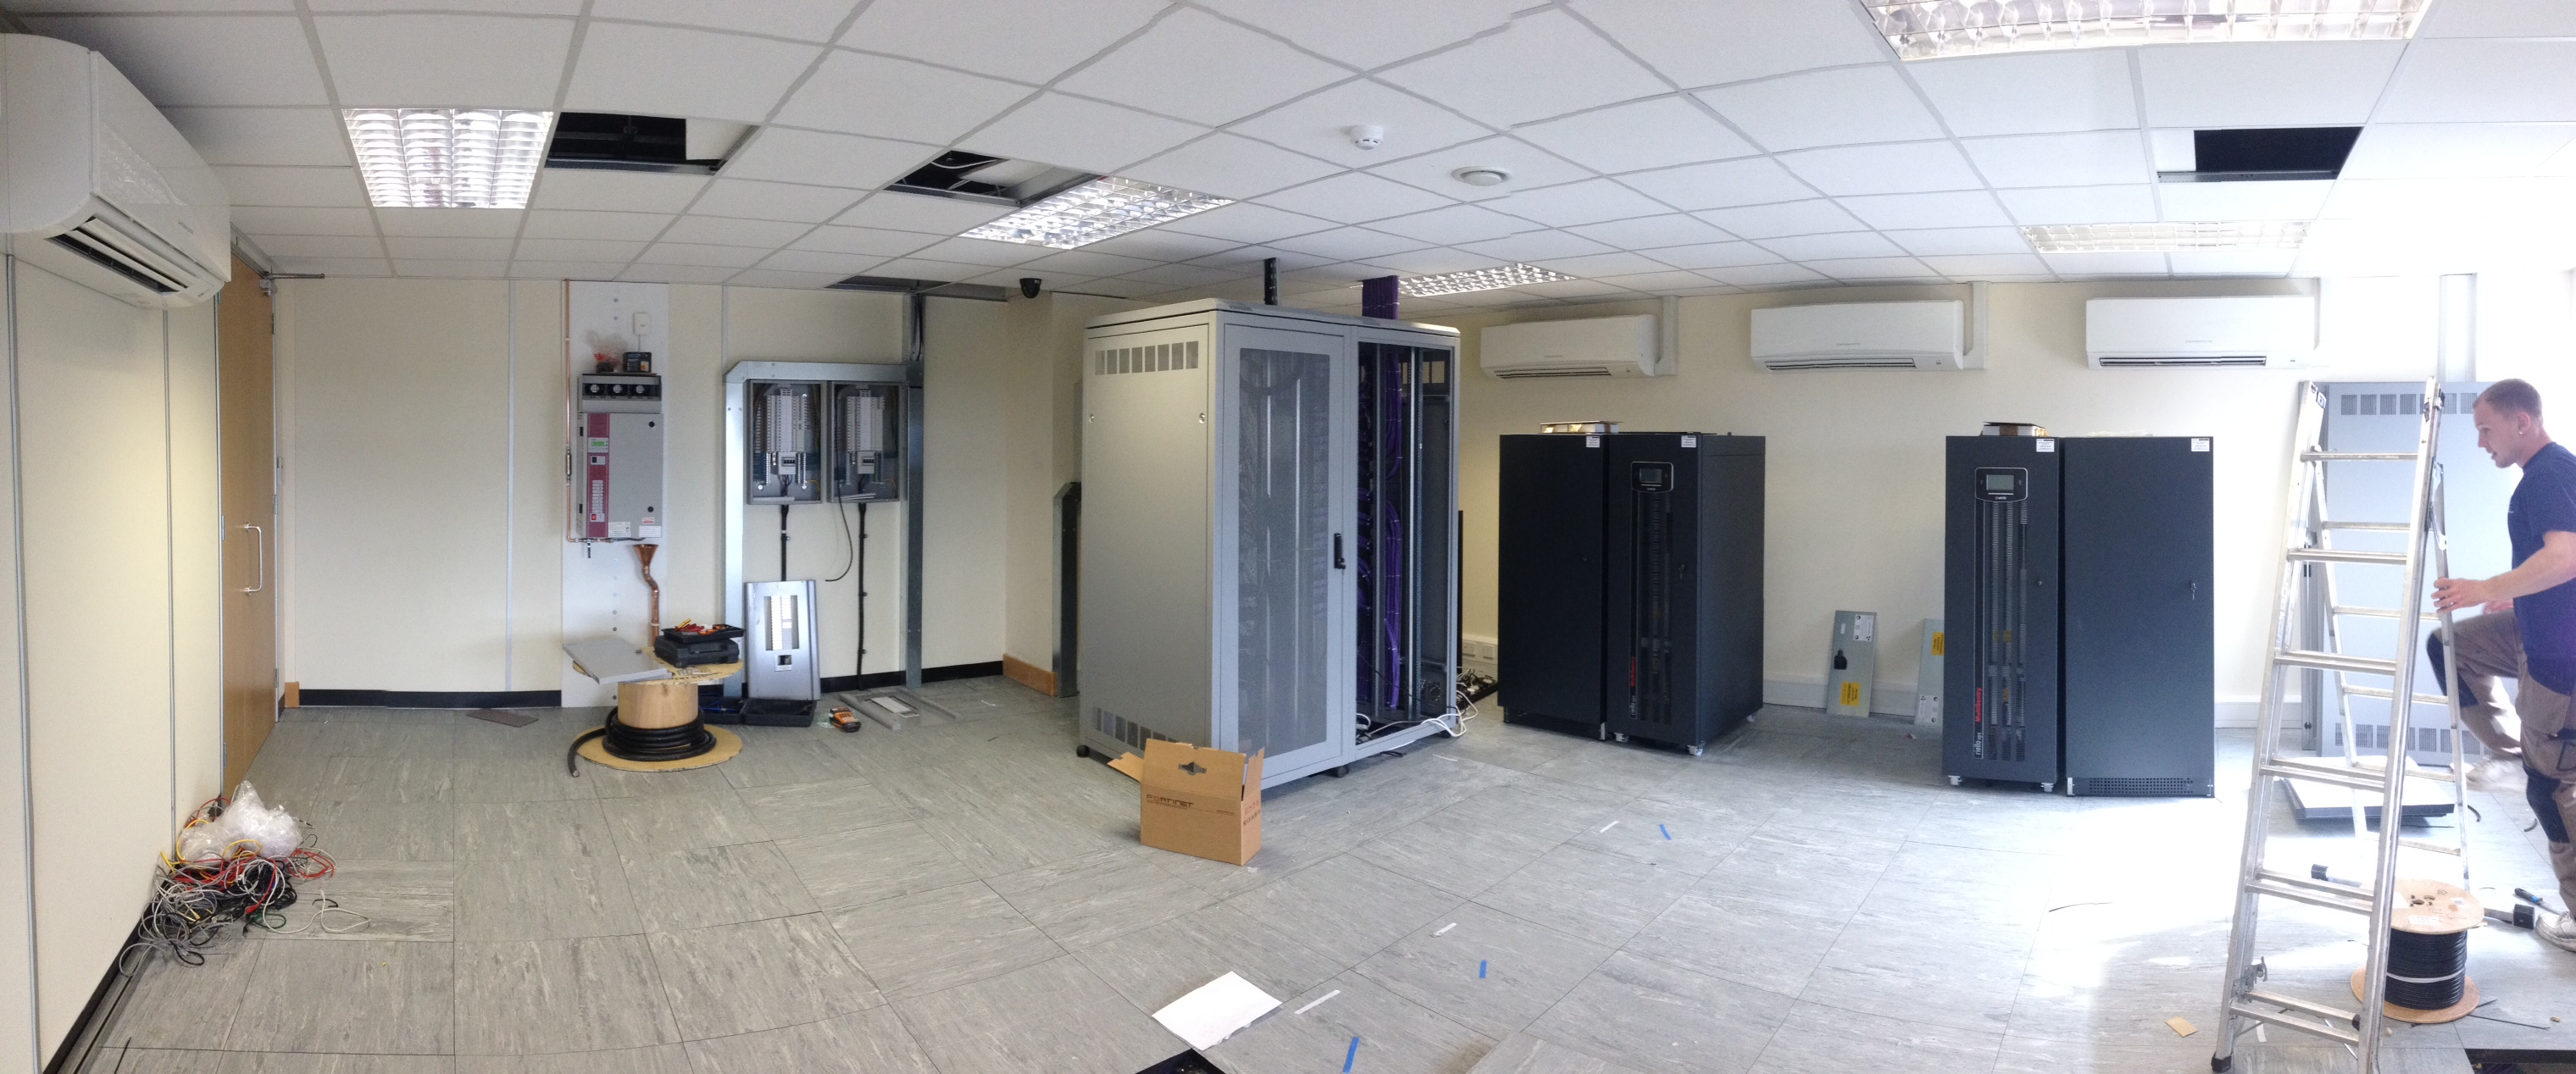 Server room air conditioning installation,